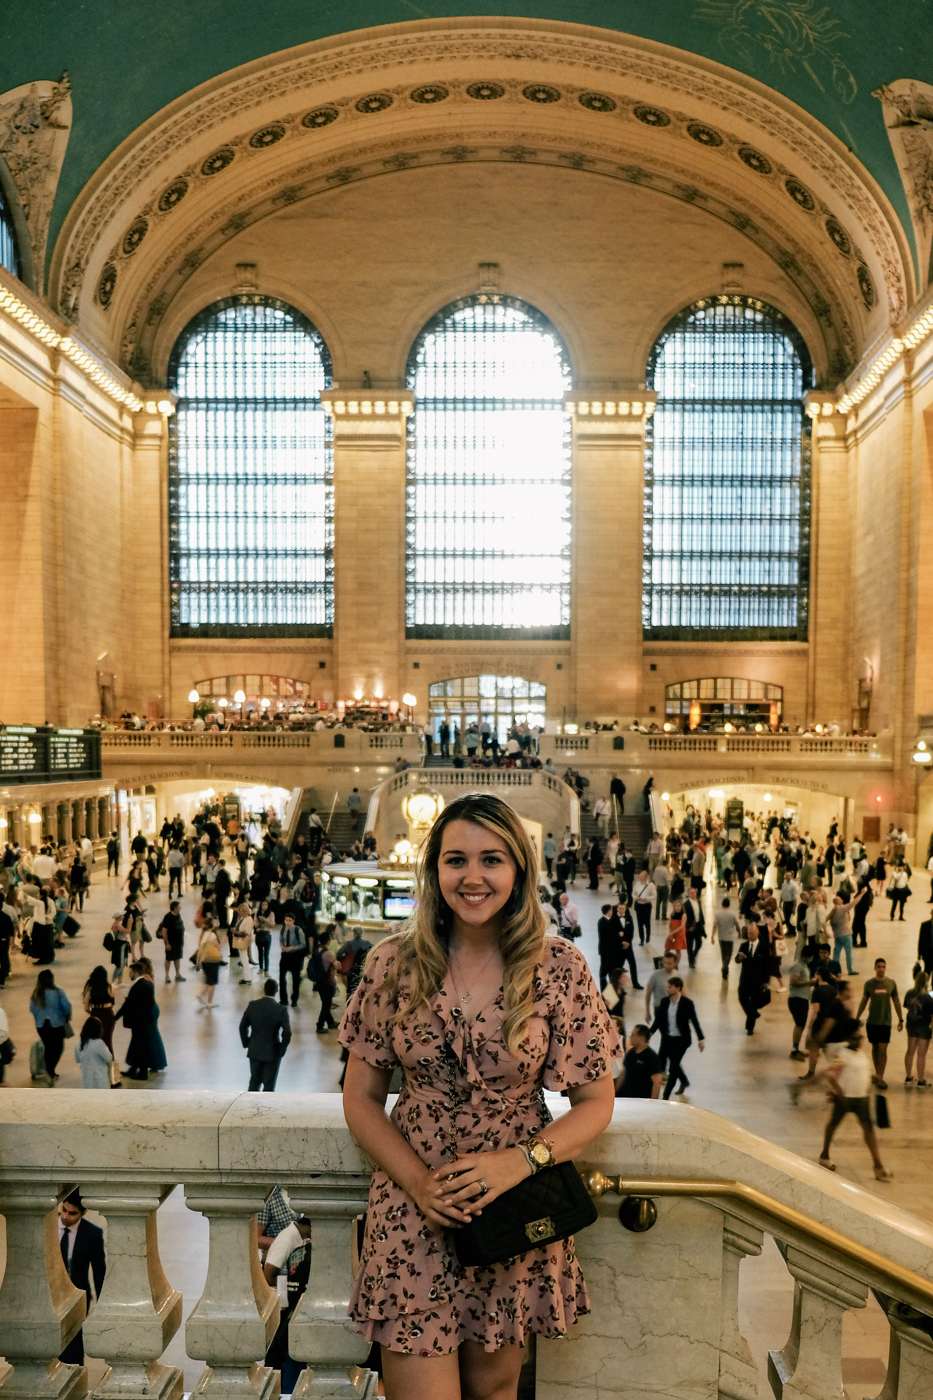 Debora Dahl, Grand Central Station, Gossip Girl, Serena